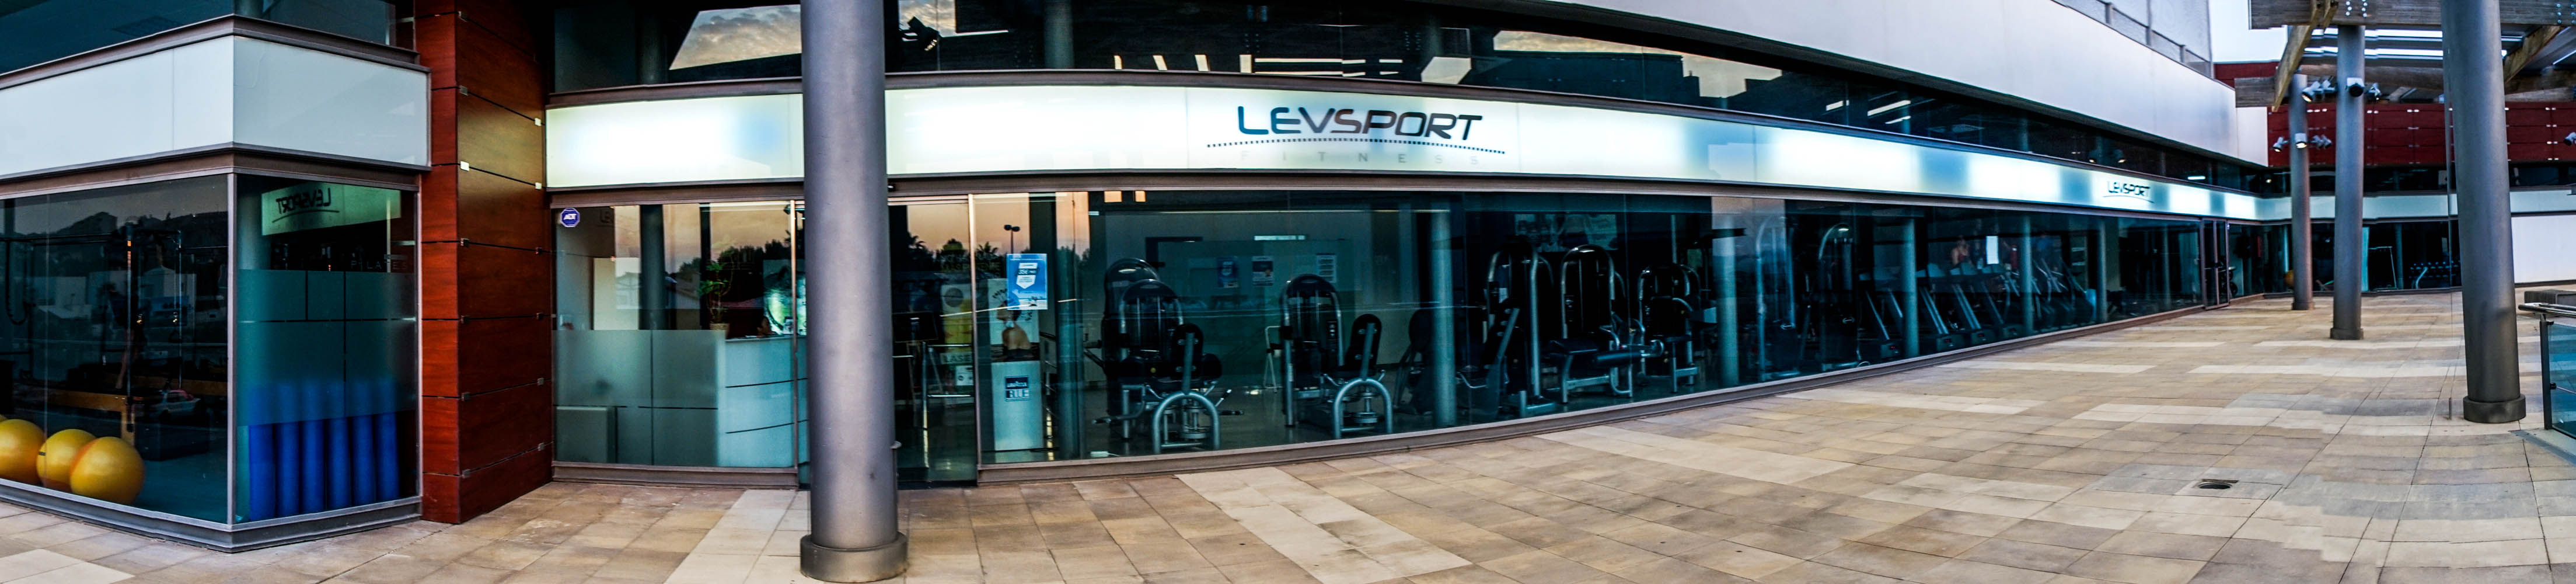 Levsport Gimnasio en Altorreal